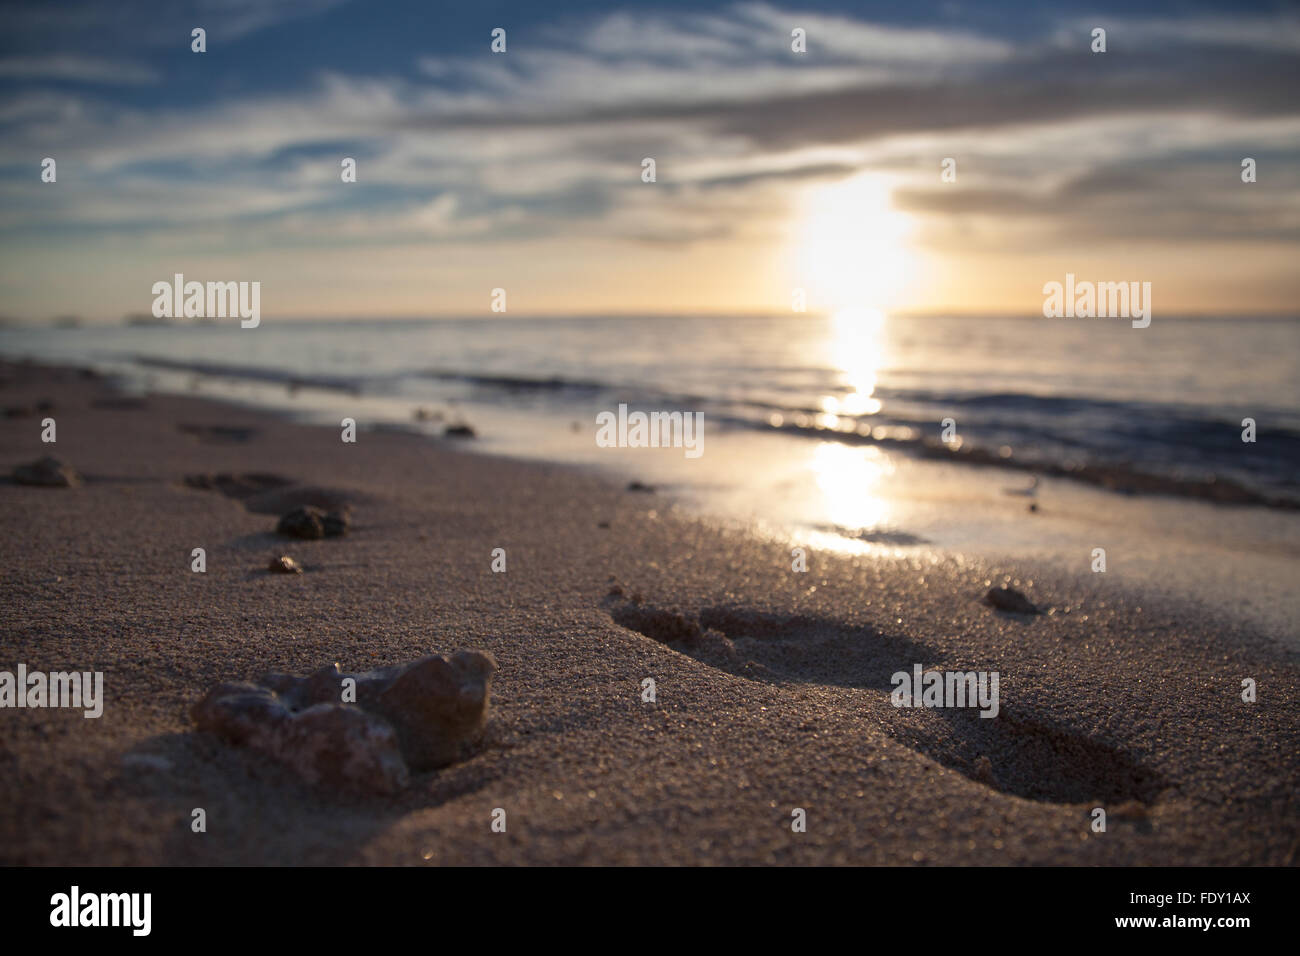 Stock footsteps in beach sand on the shores of Mauritius, Africa at sunset. - Stock Image